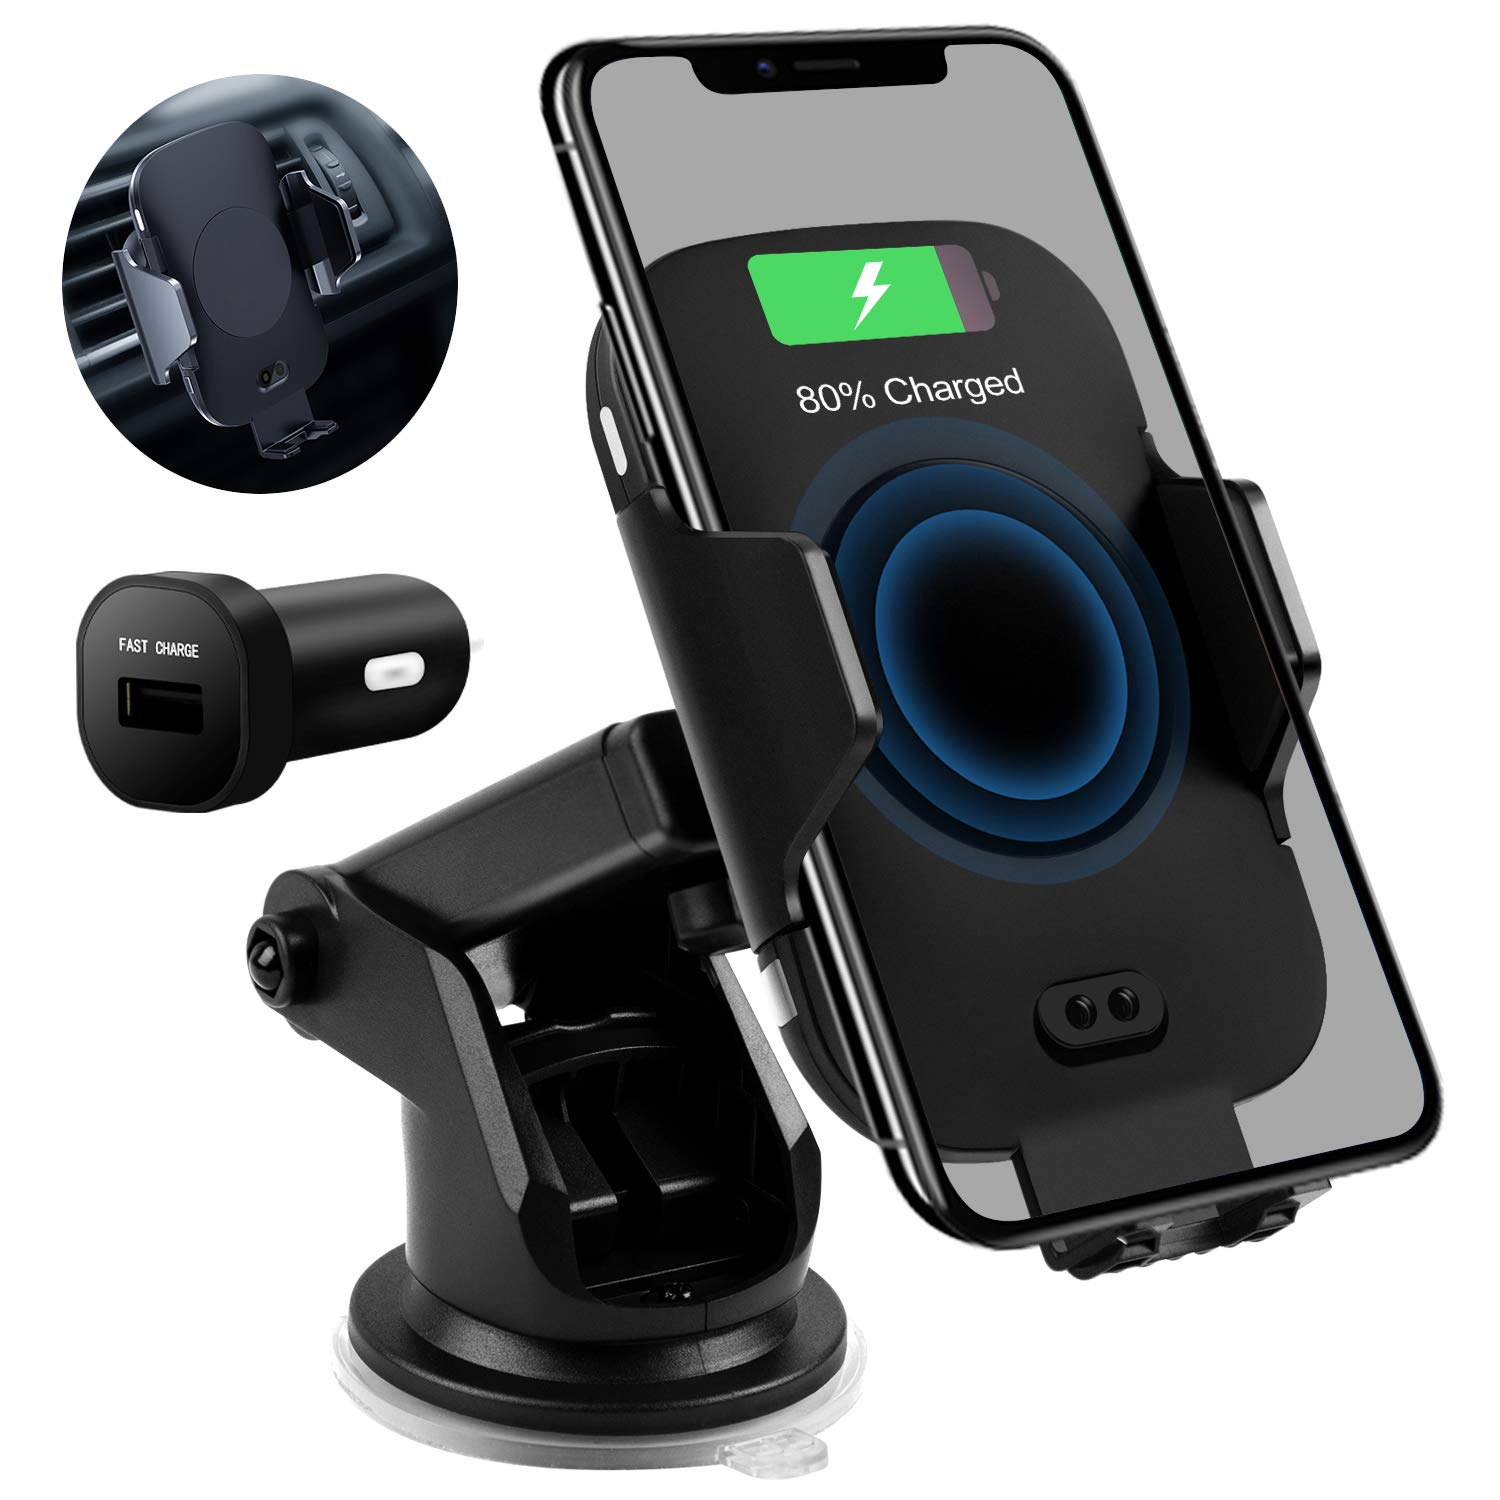 ROSON Wireless Car Charger Mount, 10W Qi Fast Charging Auto Clamping Windshield Dash Air Vent Phone Holder for Car Compatible with iPhone 11 Xs Max XR 8 Plus, Samsung S10 S9 S8 Note 10, LG V30, etc by ROSON